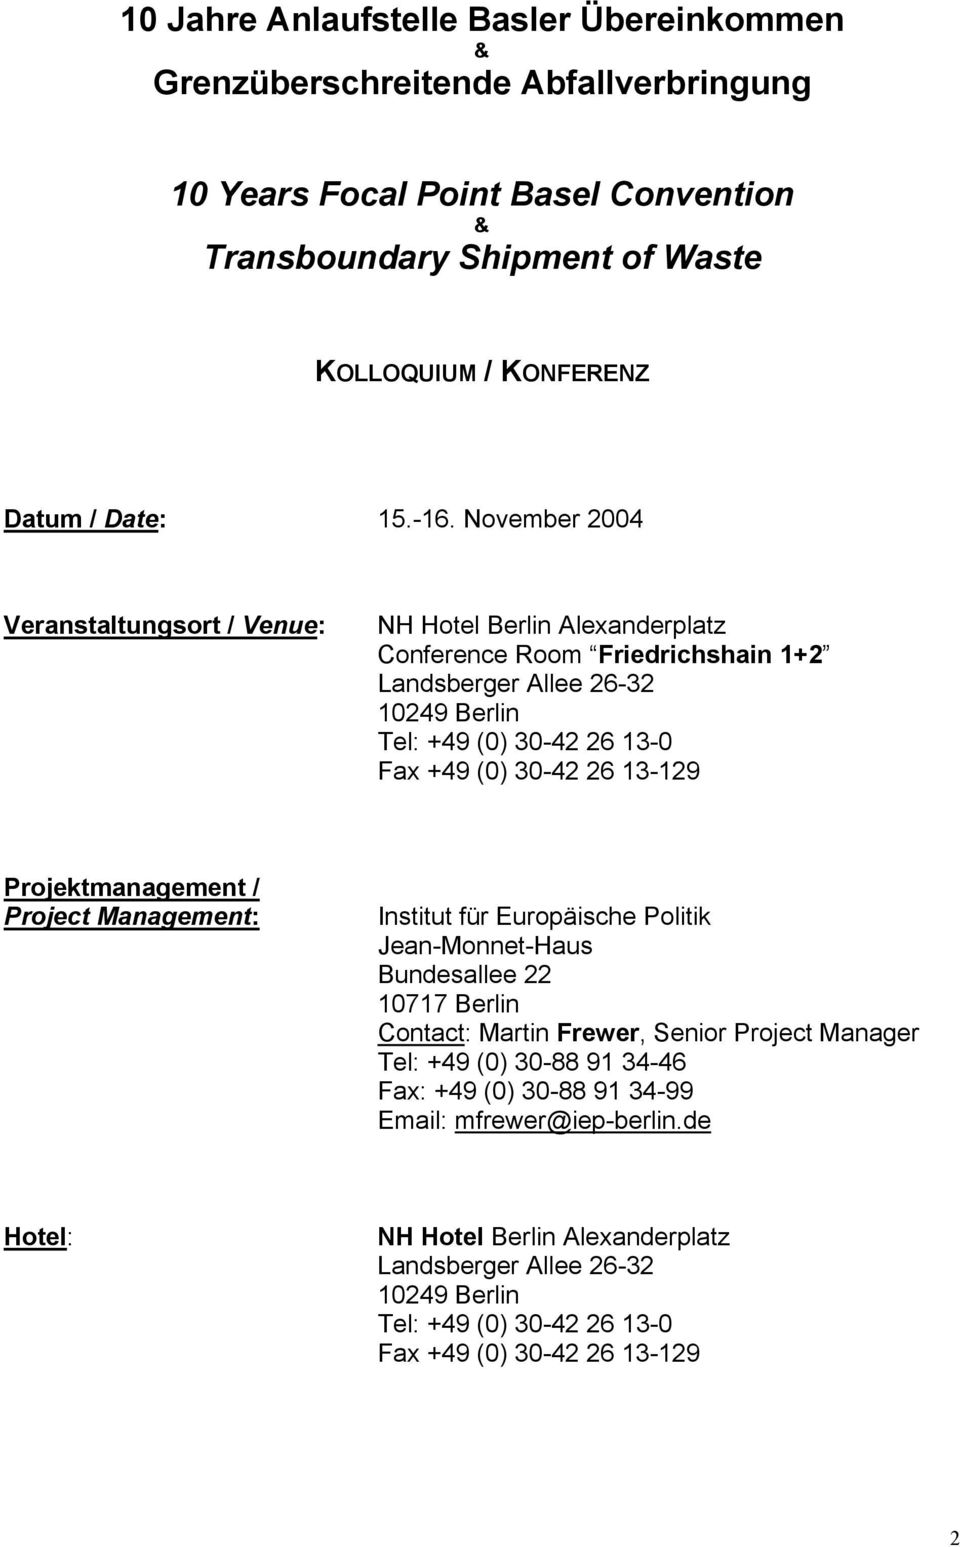 26 13-129 Projektmanagement / Project Management: Institut für Europäische Politik Jean-Monnet-Haus Bundesallee 22 10717 Berlin Contact: Martin Frewer, Senior Project Manager Tel: +49 (0) 30-88